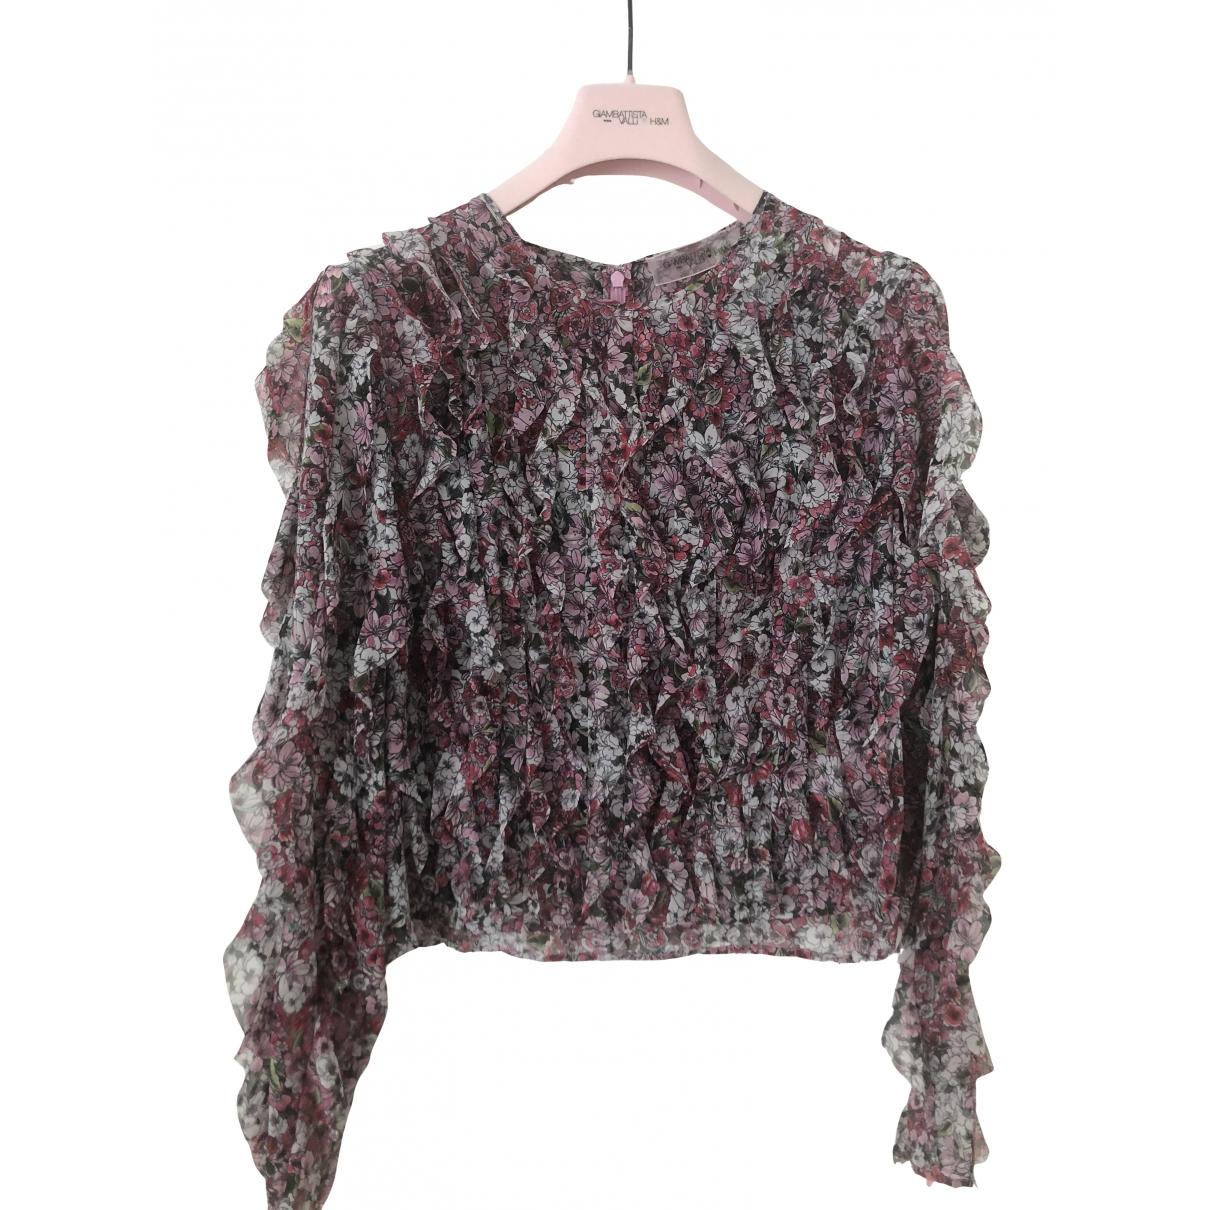 Giambattista Valli X H&m \N Multicolour  top for Women 42 FR